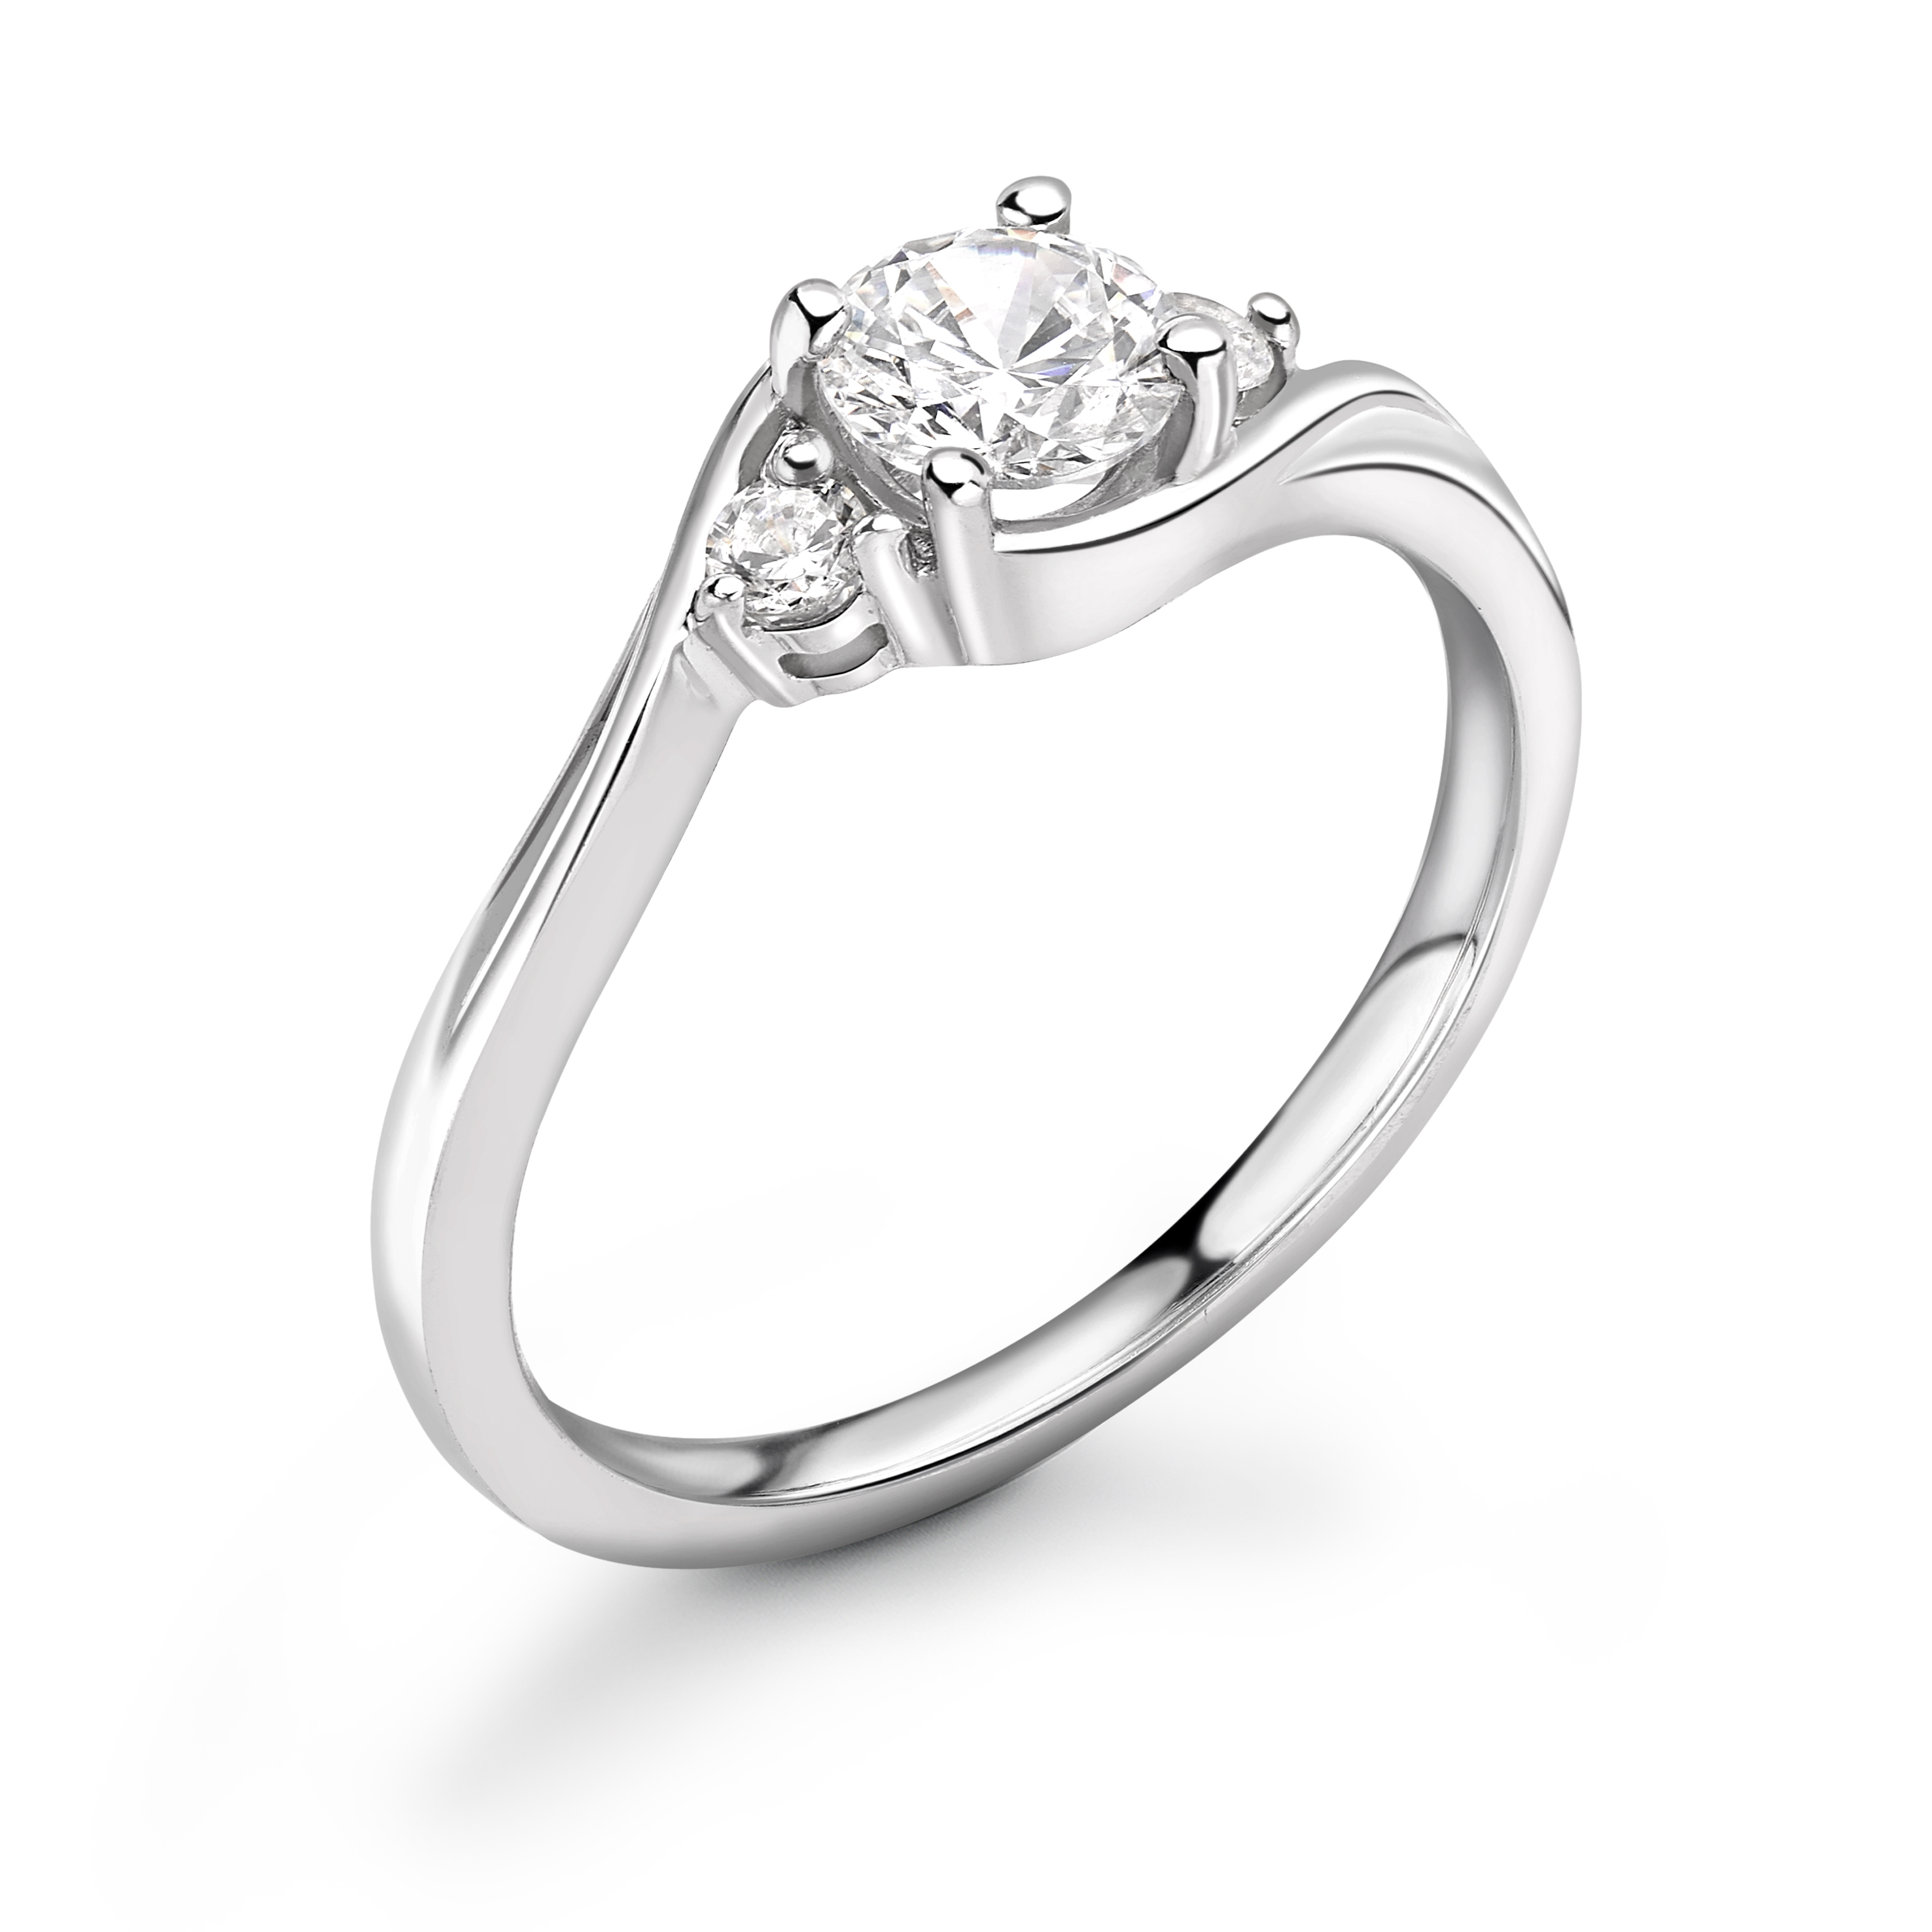 Kissing Style Round Diamond Engagement Ring